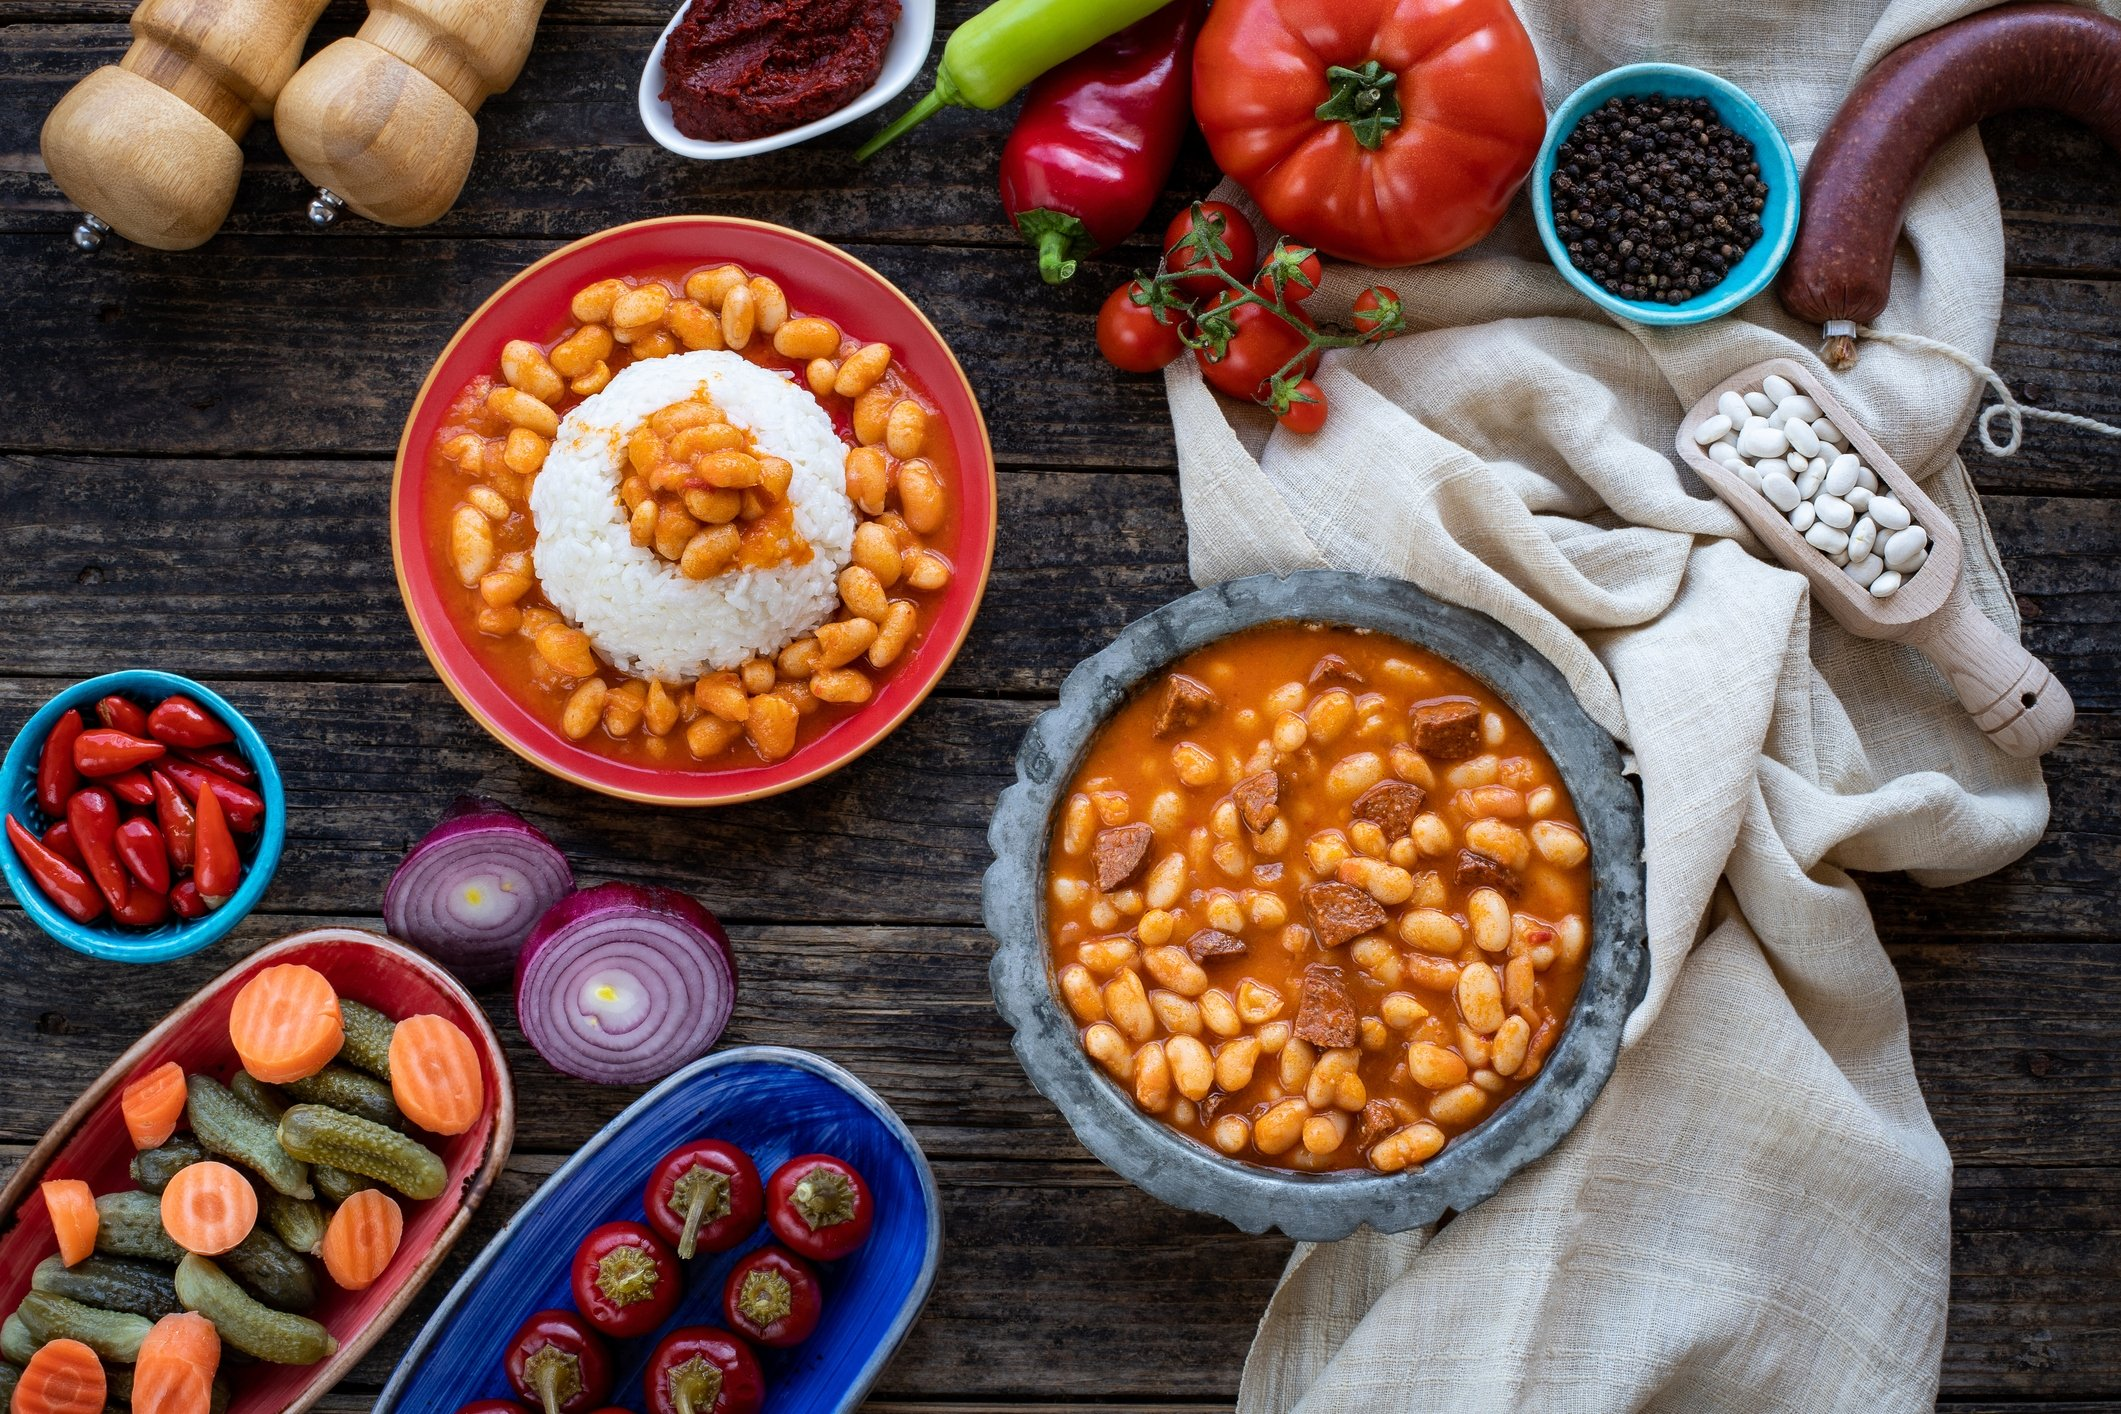 Kuru fasulye, a traditional Turkish bean dish, is often served with onion and variety of pickles. (iStock Photo)